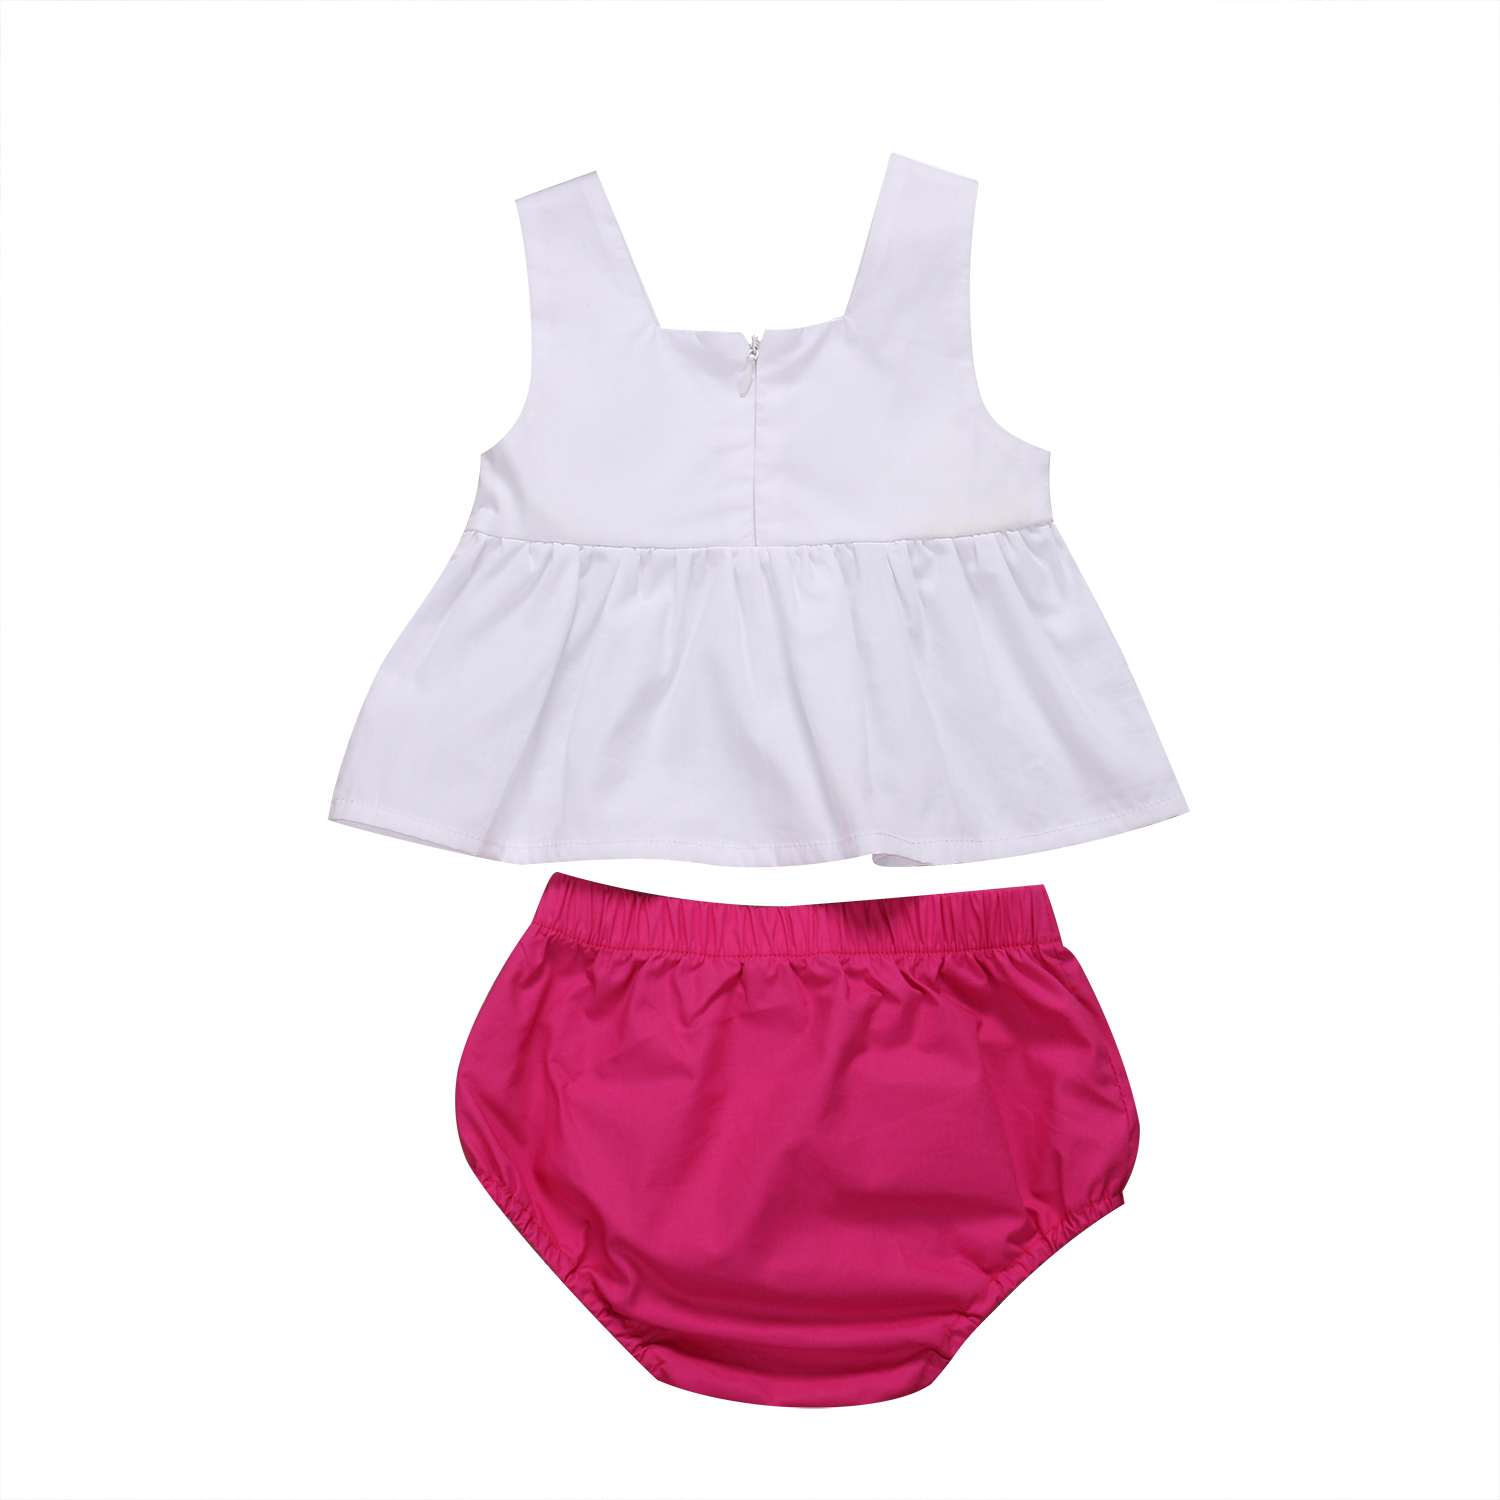 New Cute Cotton Girls Baby Kids Sun Top Shirt Hot Pants Shorts Summer Outfits Clothes 2PCS Clothing Set серьги коюз топаз серьги т242024722